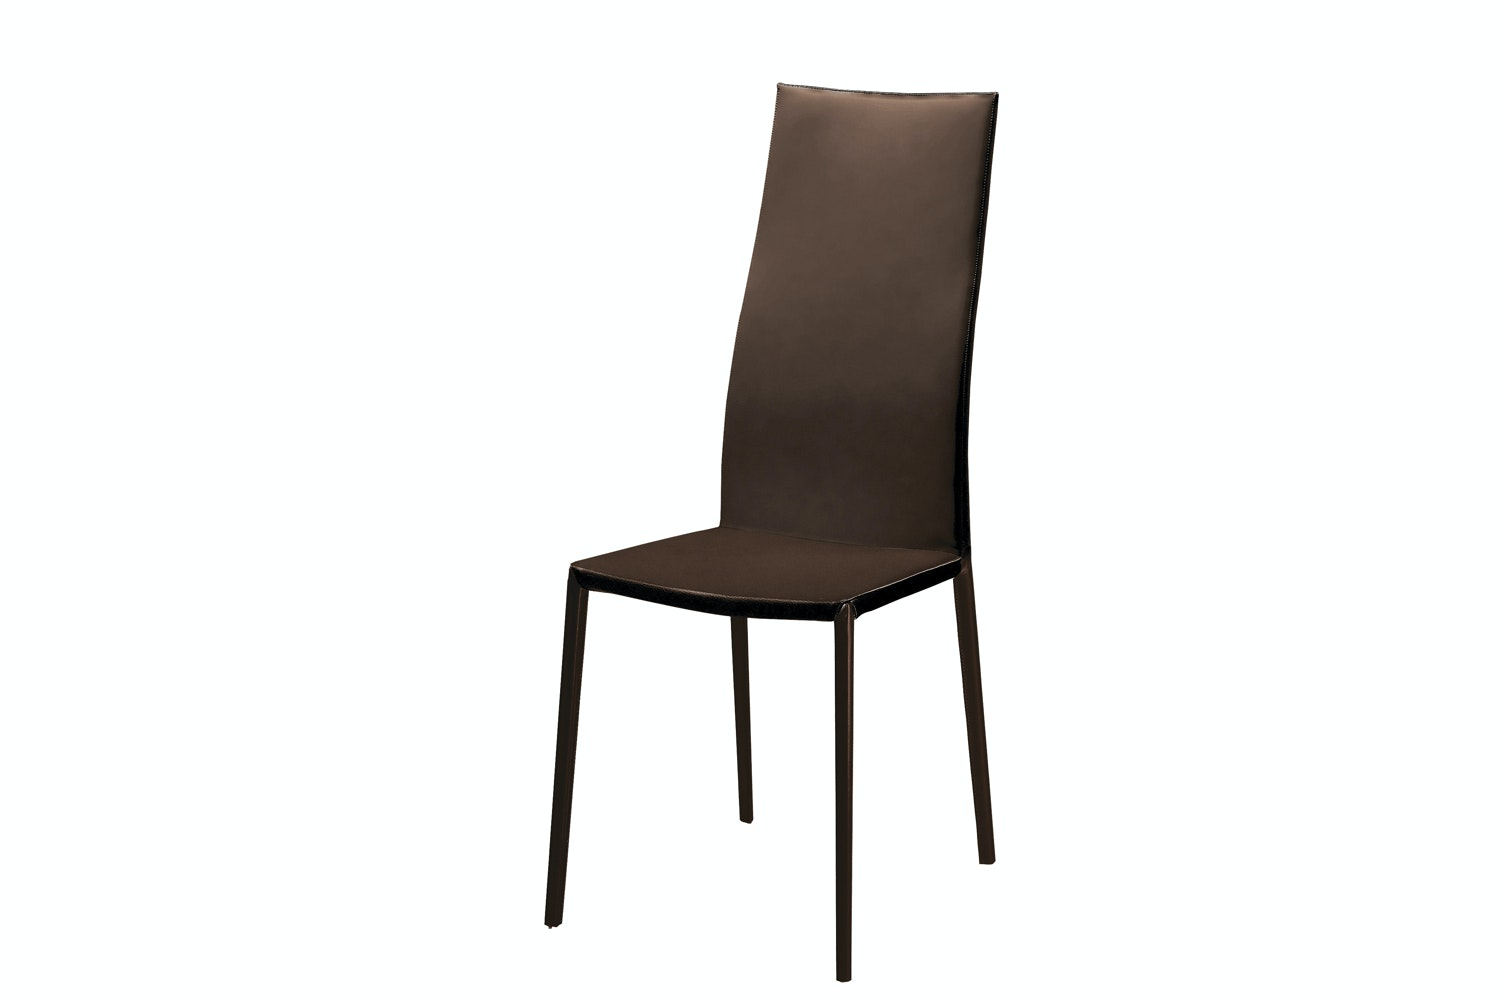 Lealta Chair by Roberto Barbieri for Zanotta